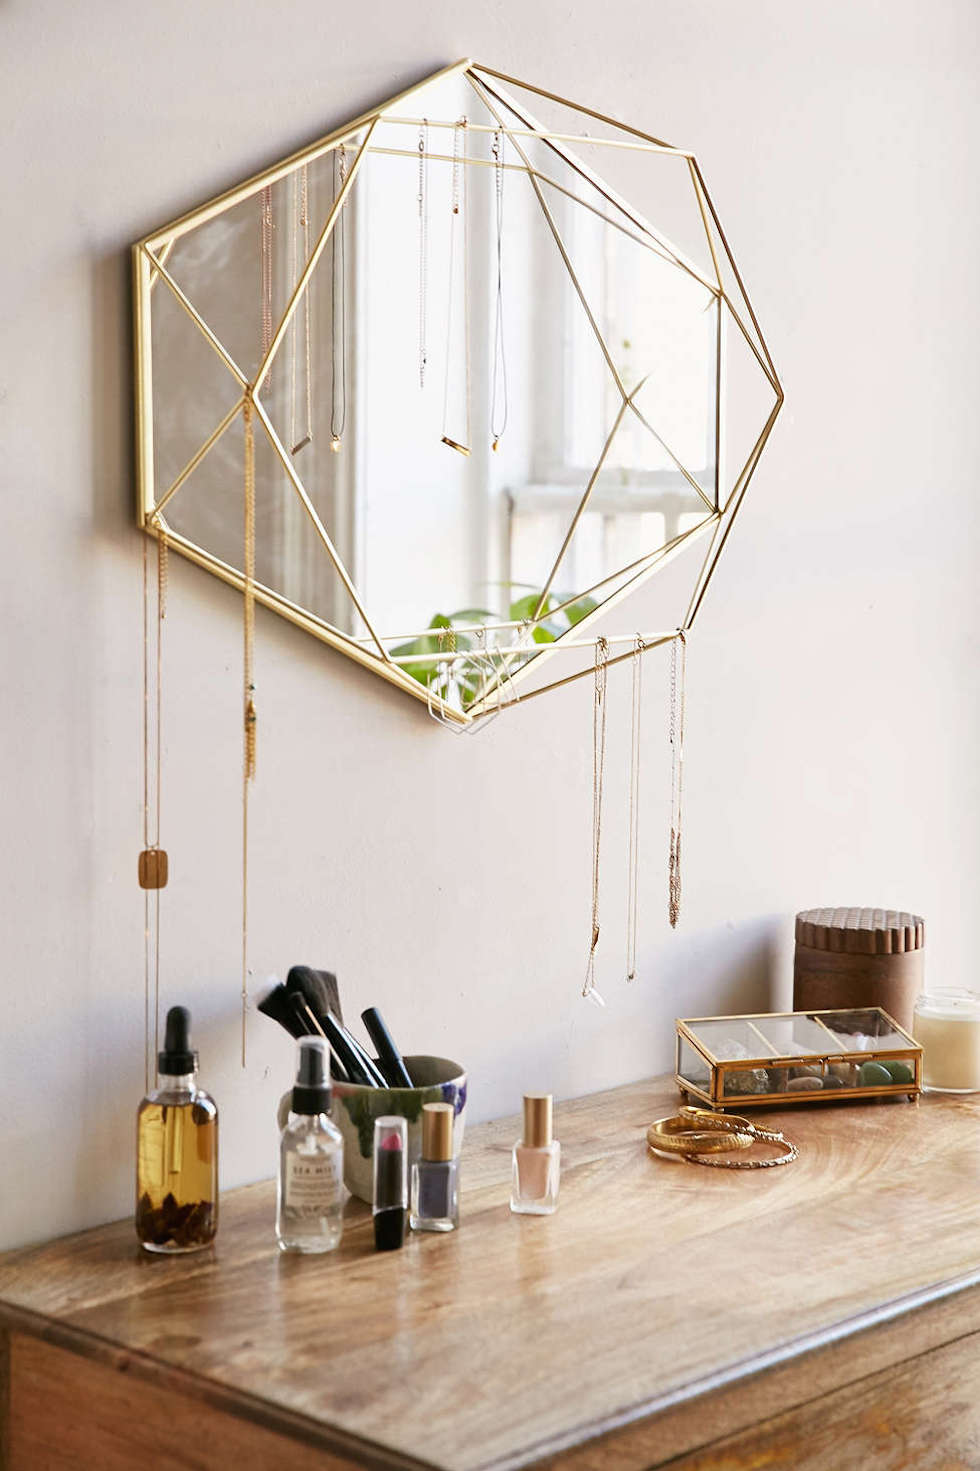 Stunning Wall mirrors Décor Ideas for Your Home17 wall mirrors decor ideas 25 Stunning Wall mirrors Decor Ideas for Your Home Stunning Wall mirrors D  cor Ideas for Your Home17